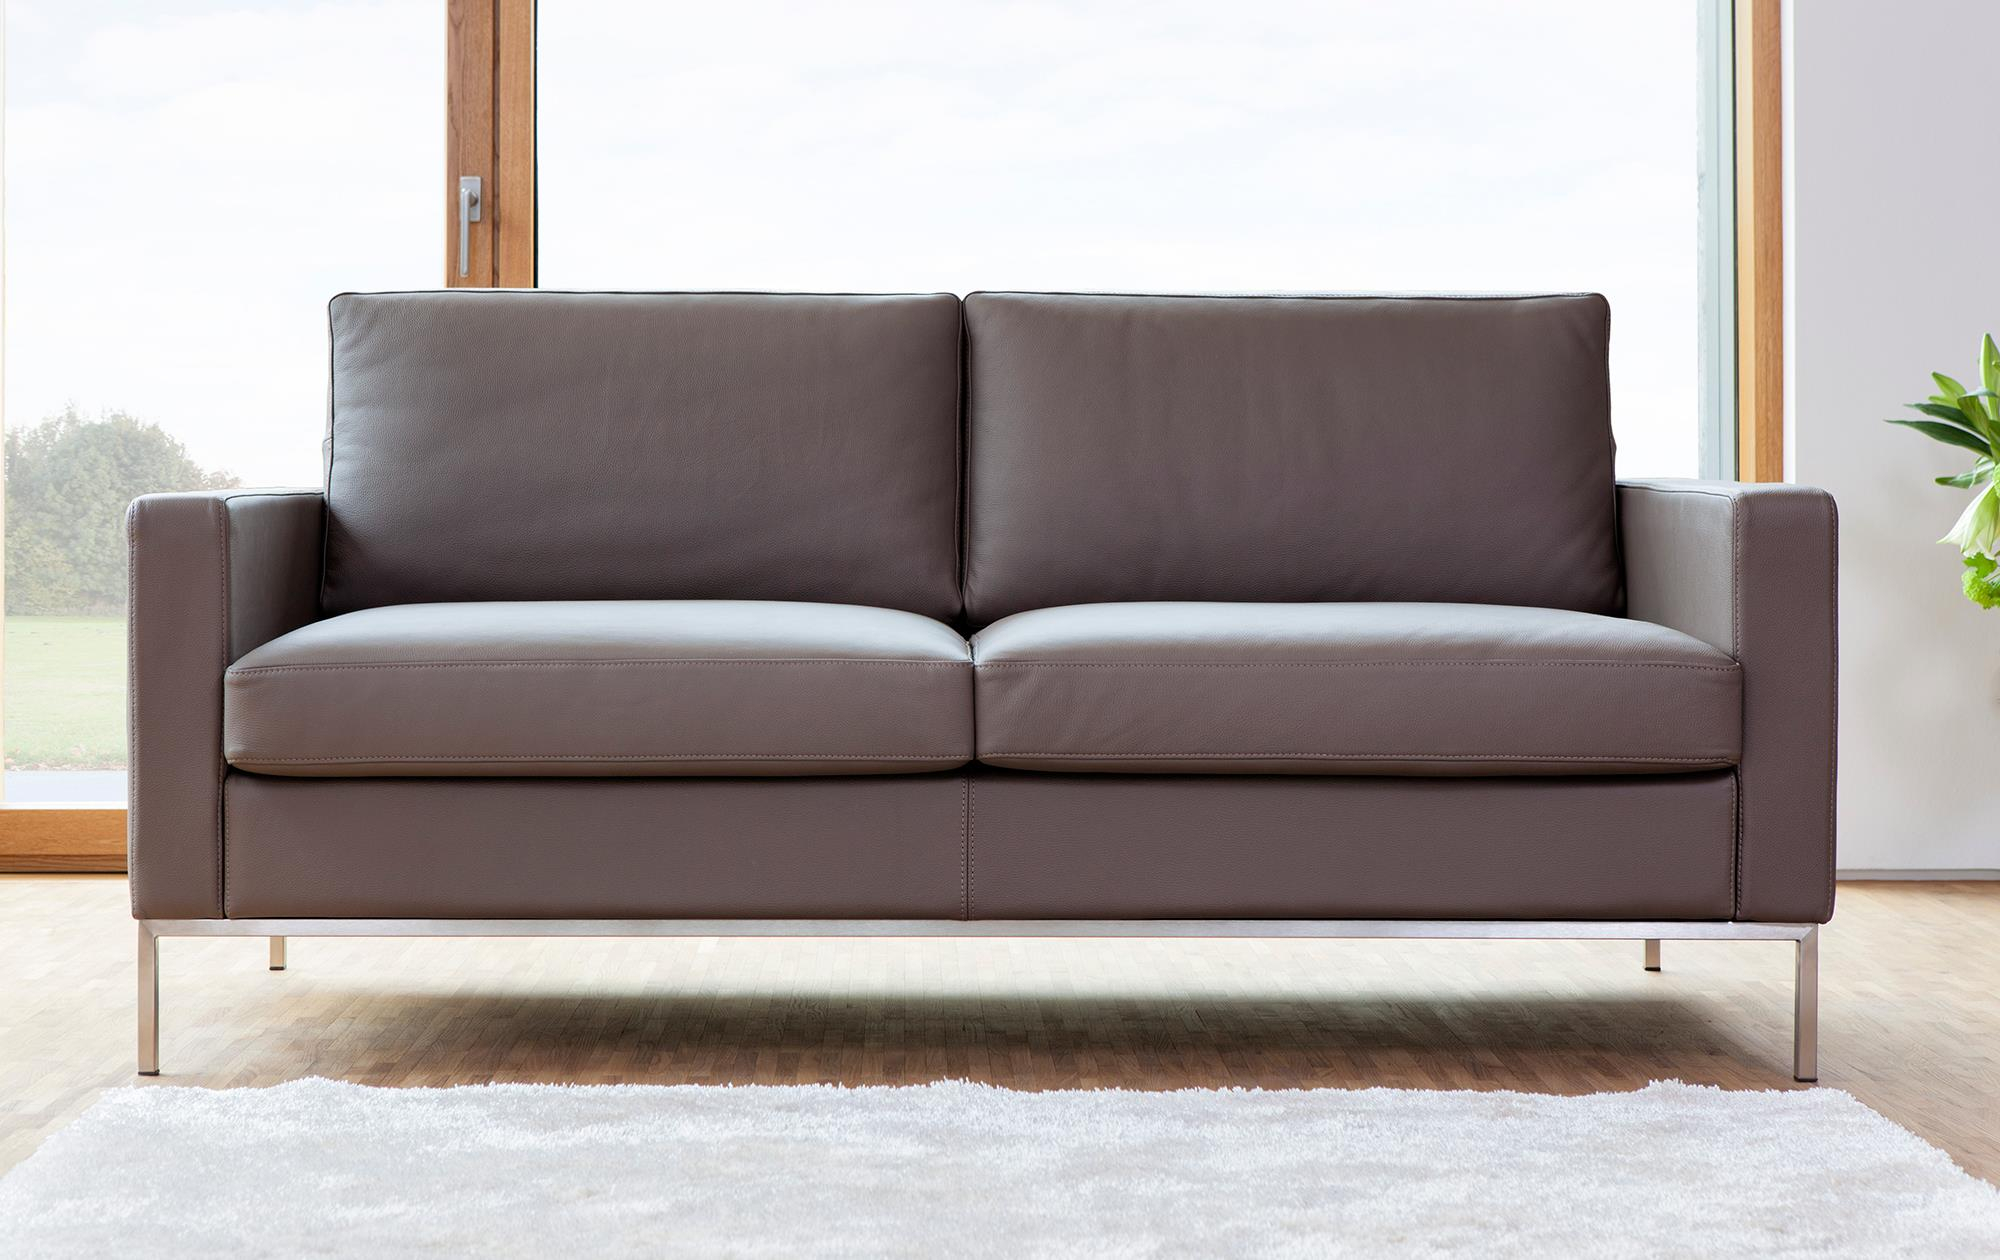 Sofa Augsburg in Leder | sessel-manufaktur.de